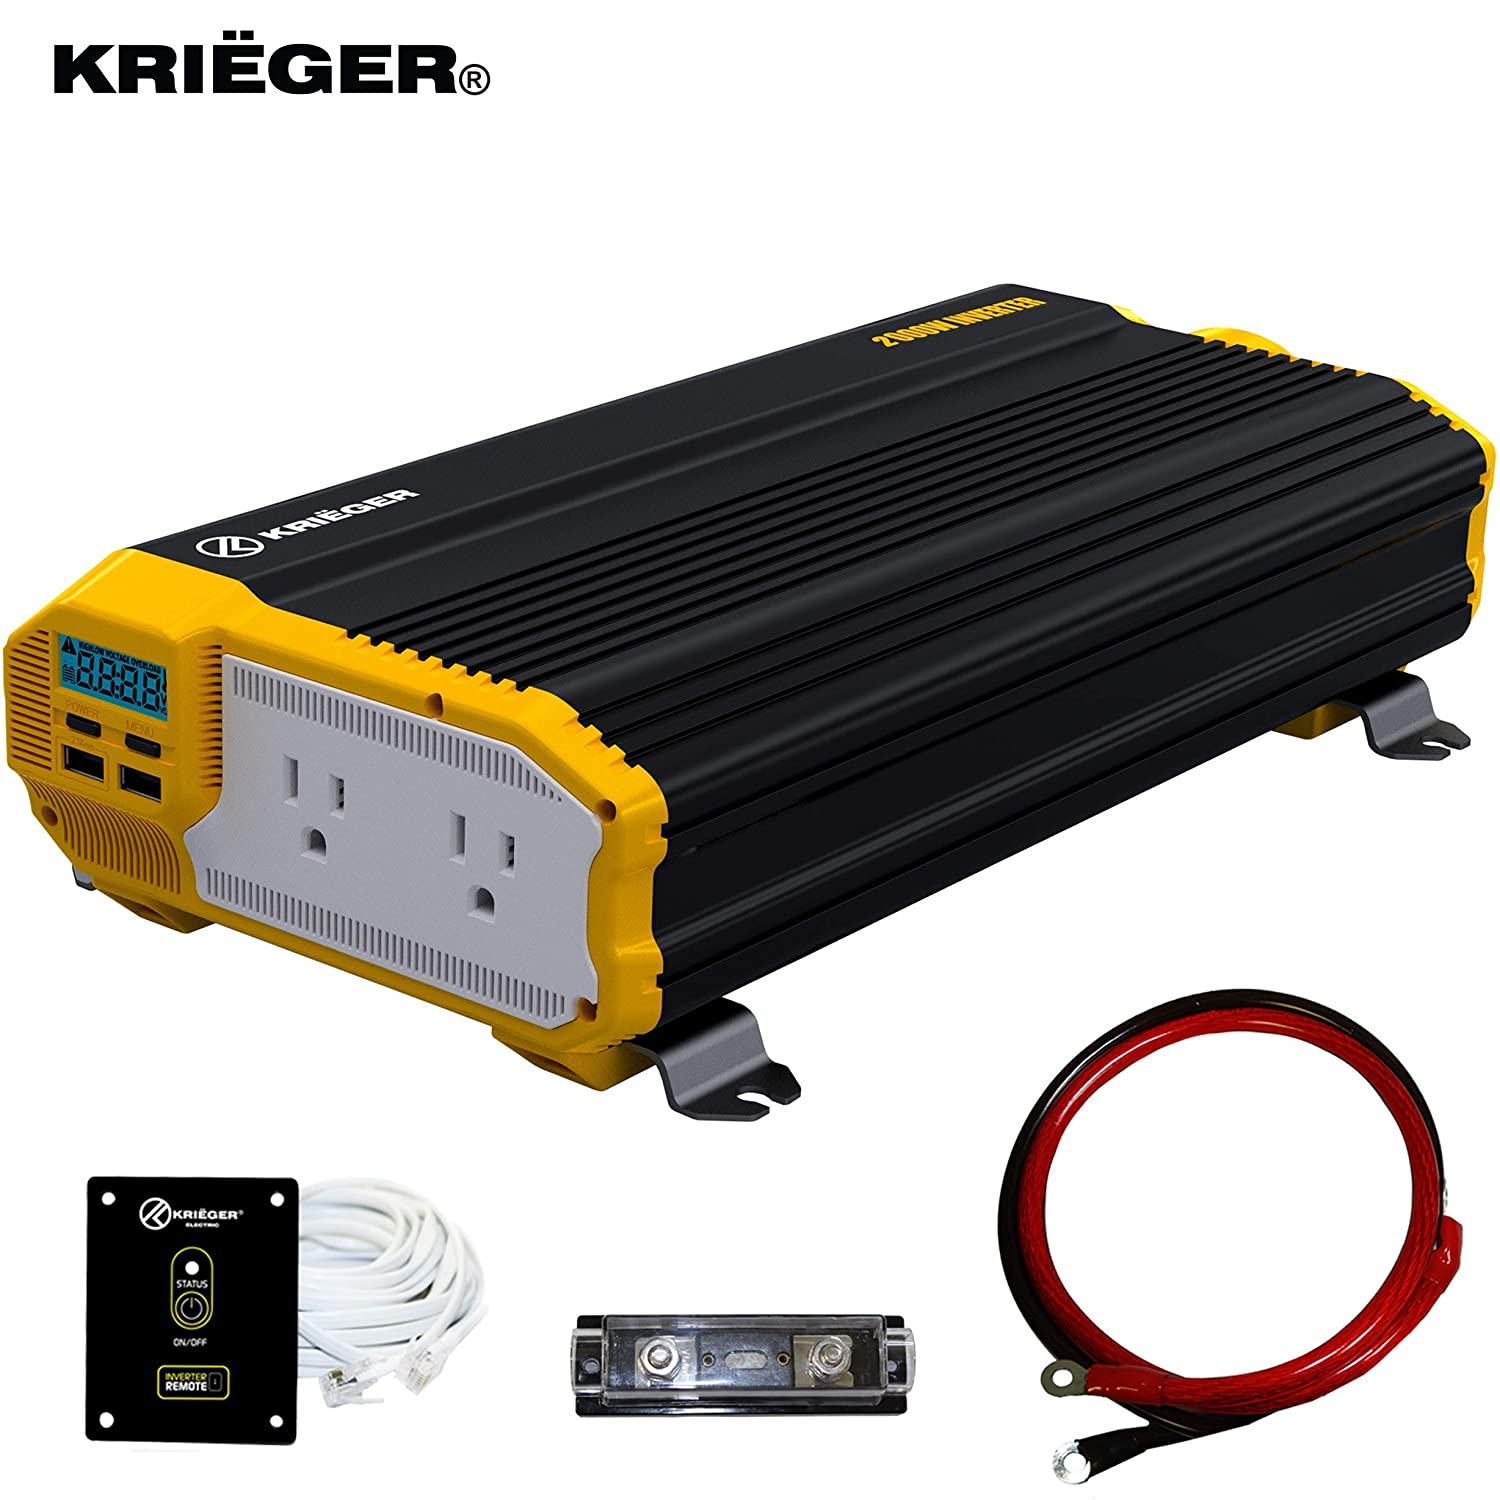 Best 2000 Watt Inverter In 2020 - Reviews & Top Picks 1